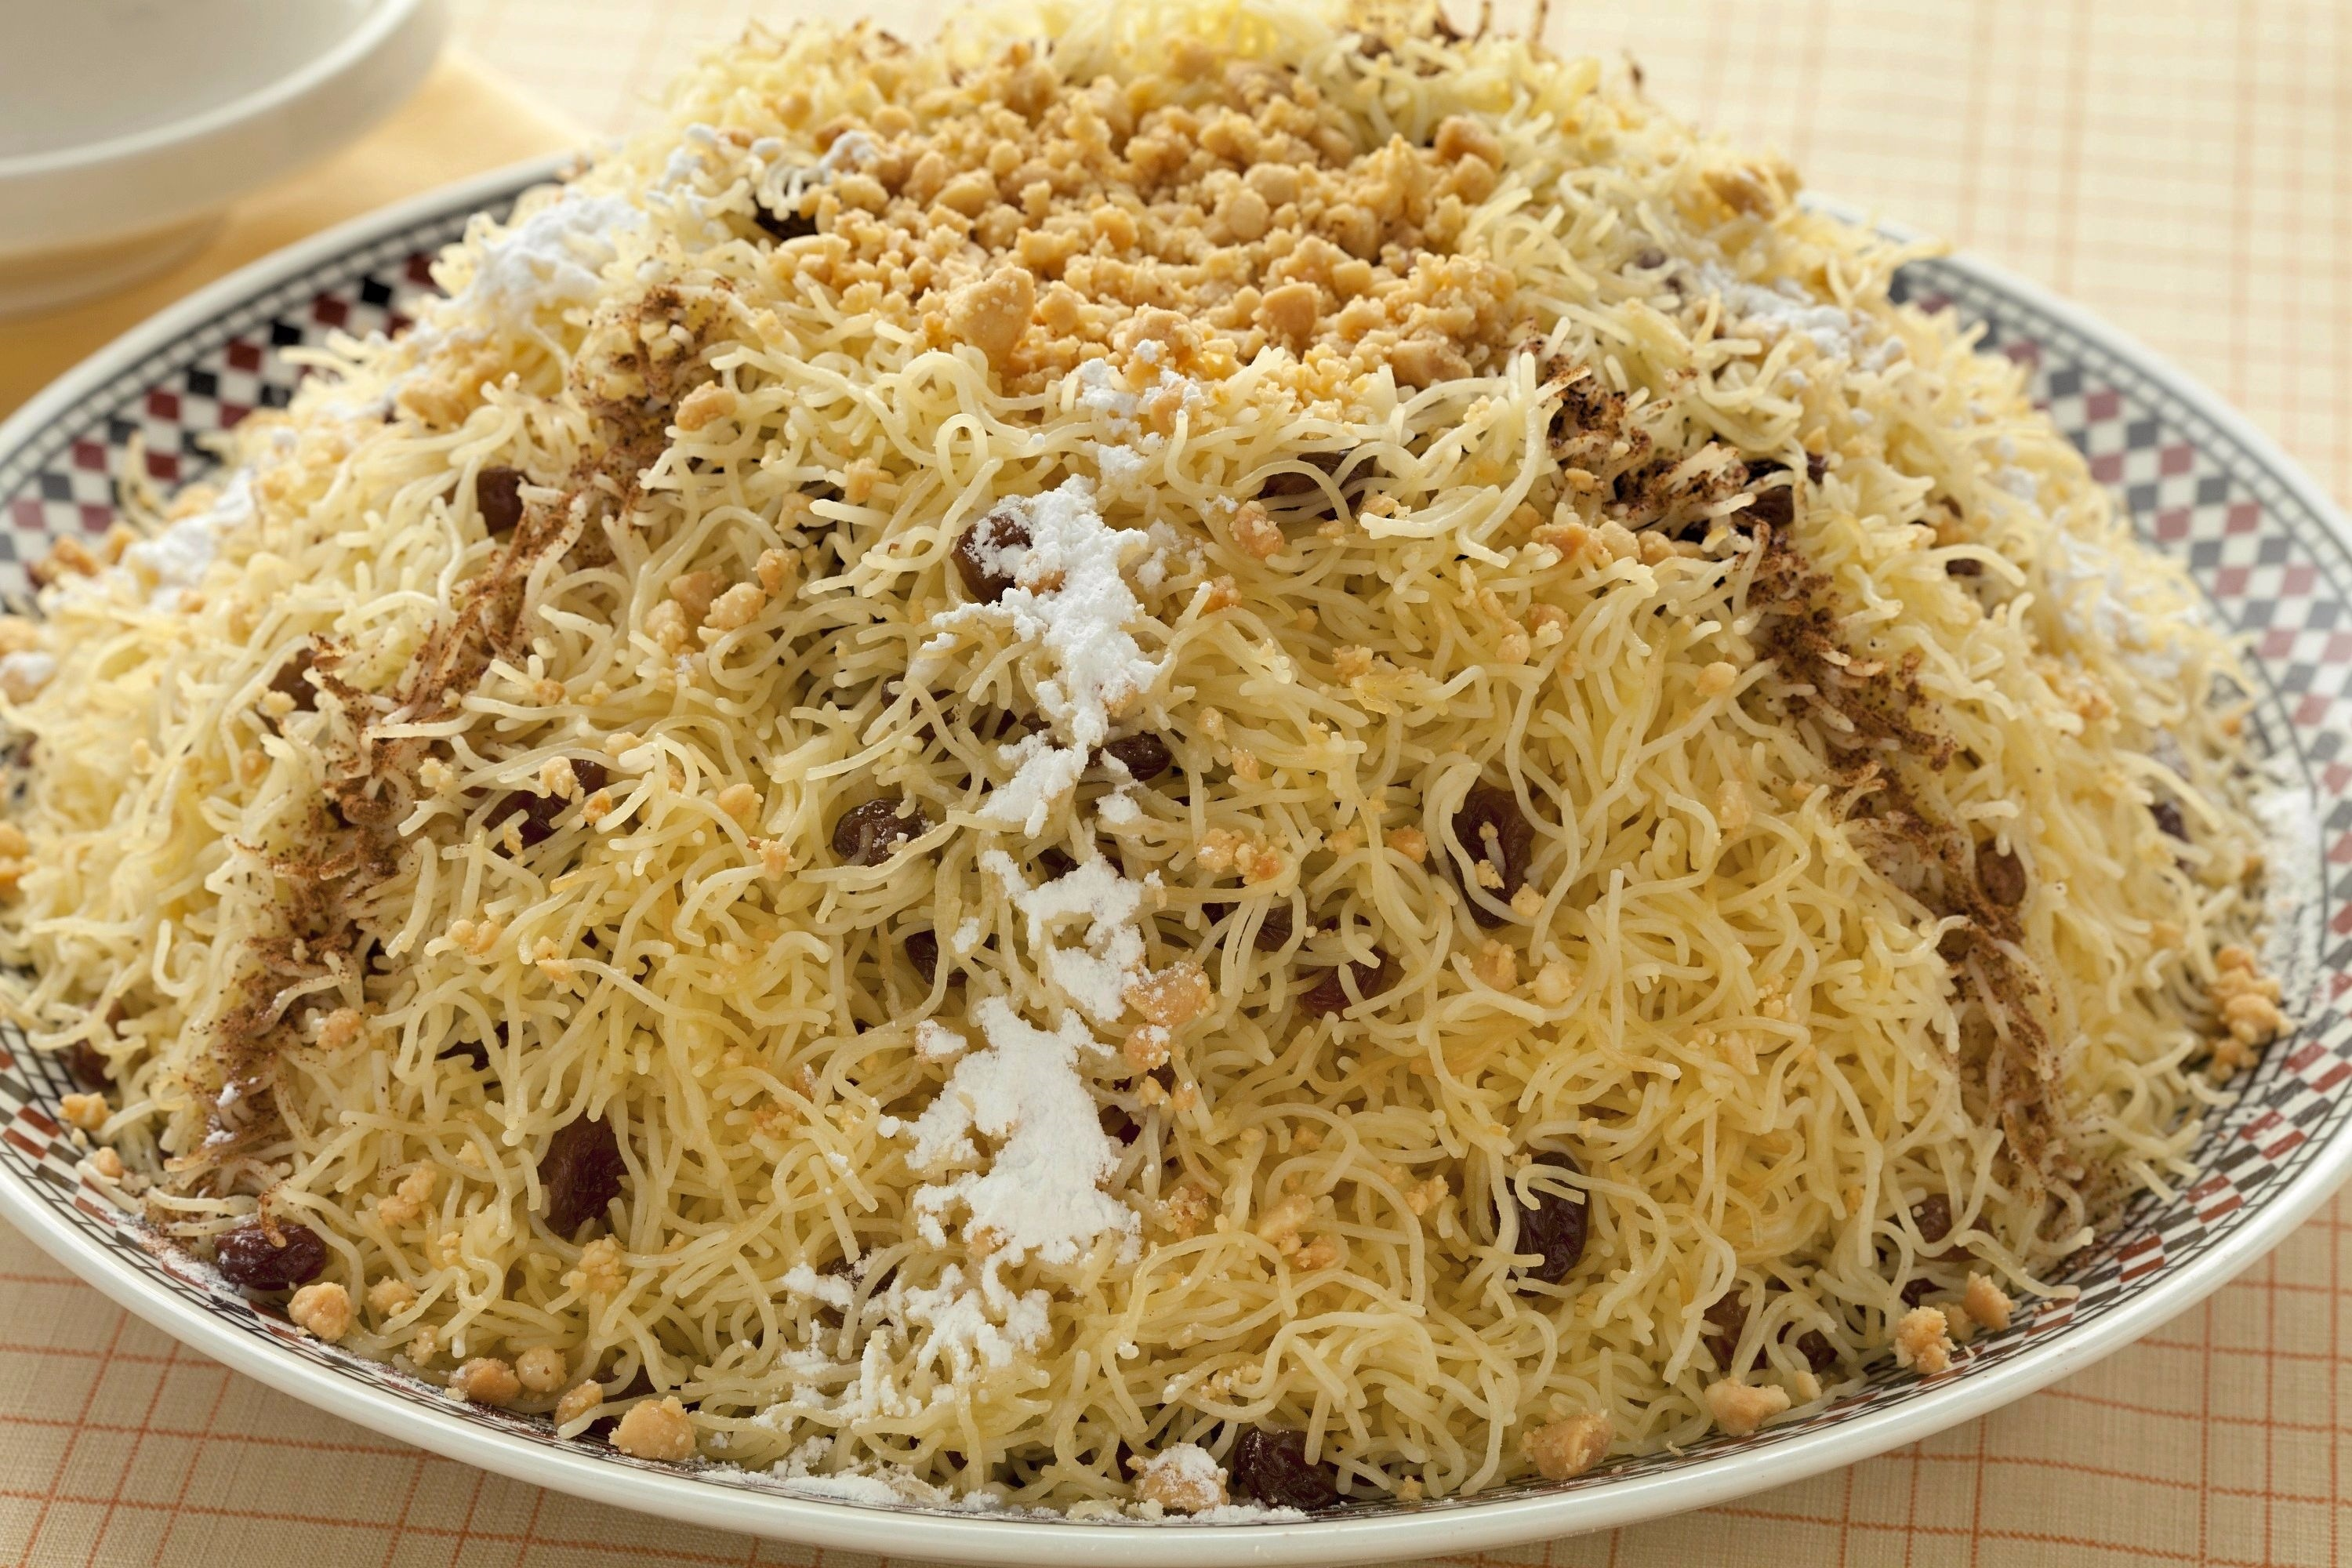 Steamed, broken strands of vermicelli are mounded high on a platter and decorated ground fried almonds, cinnamon and powdered sugar. Raisins can be seen throughout the vermicelli.